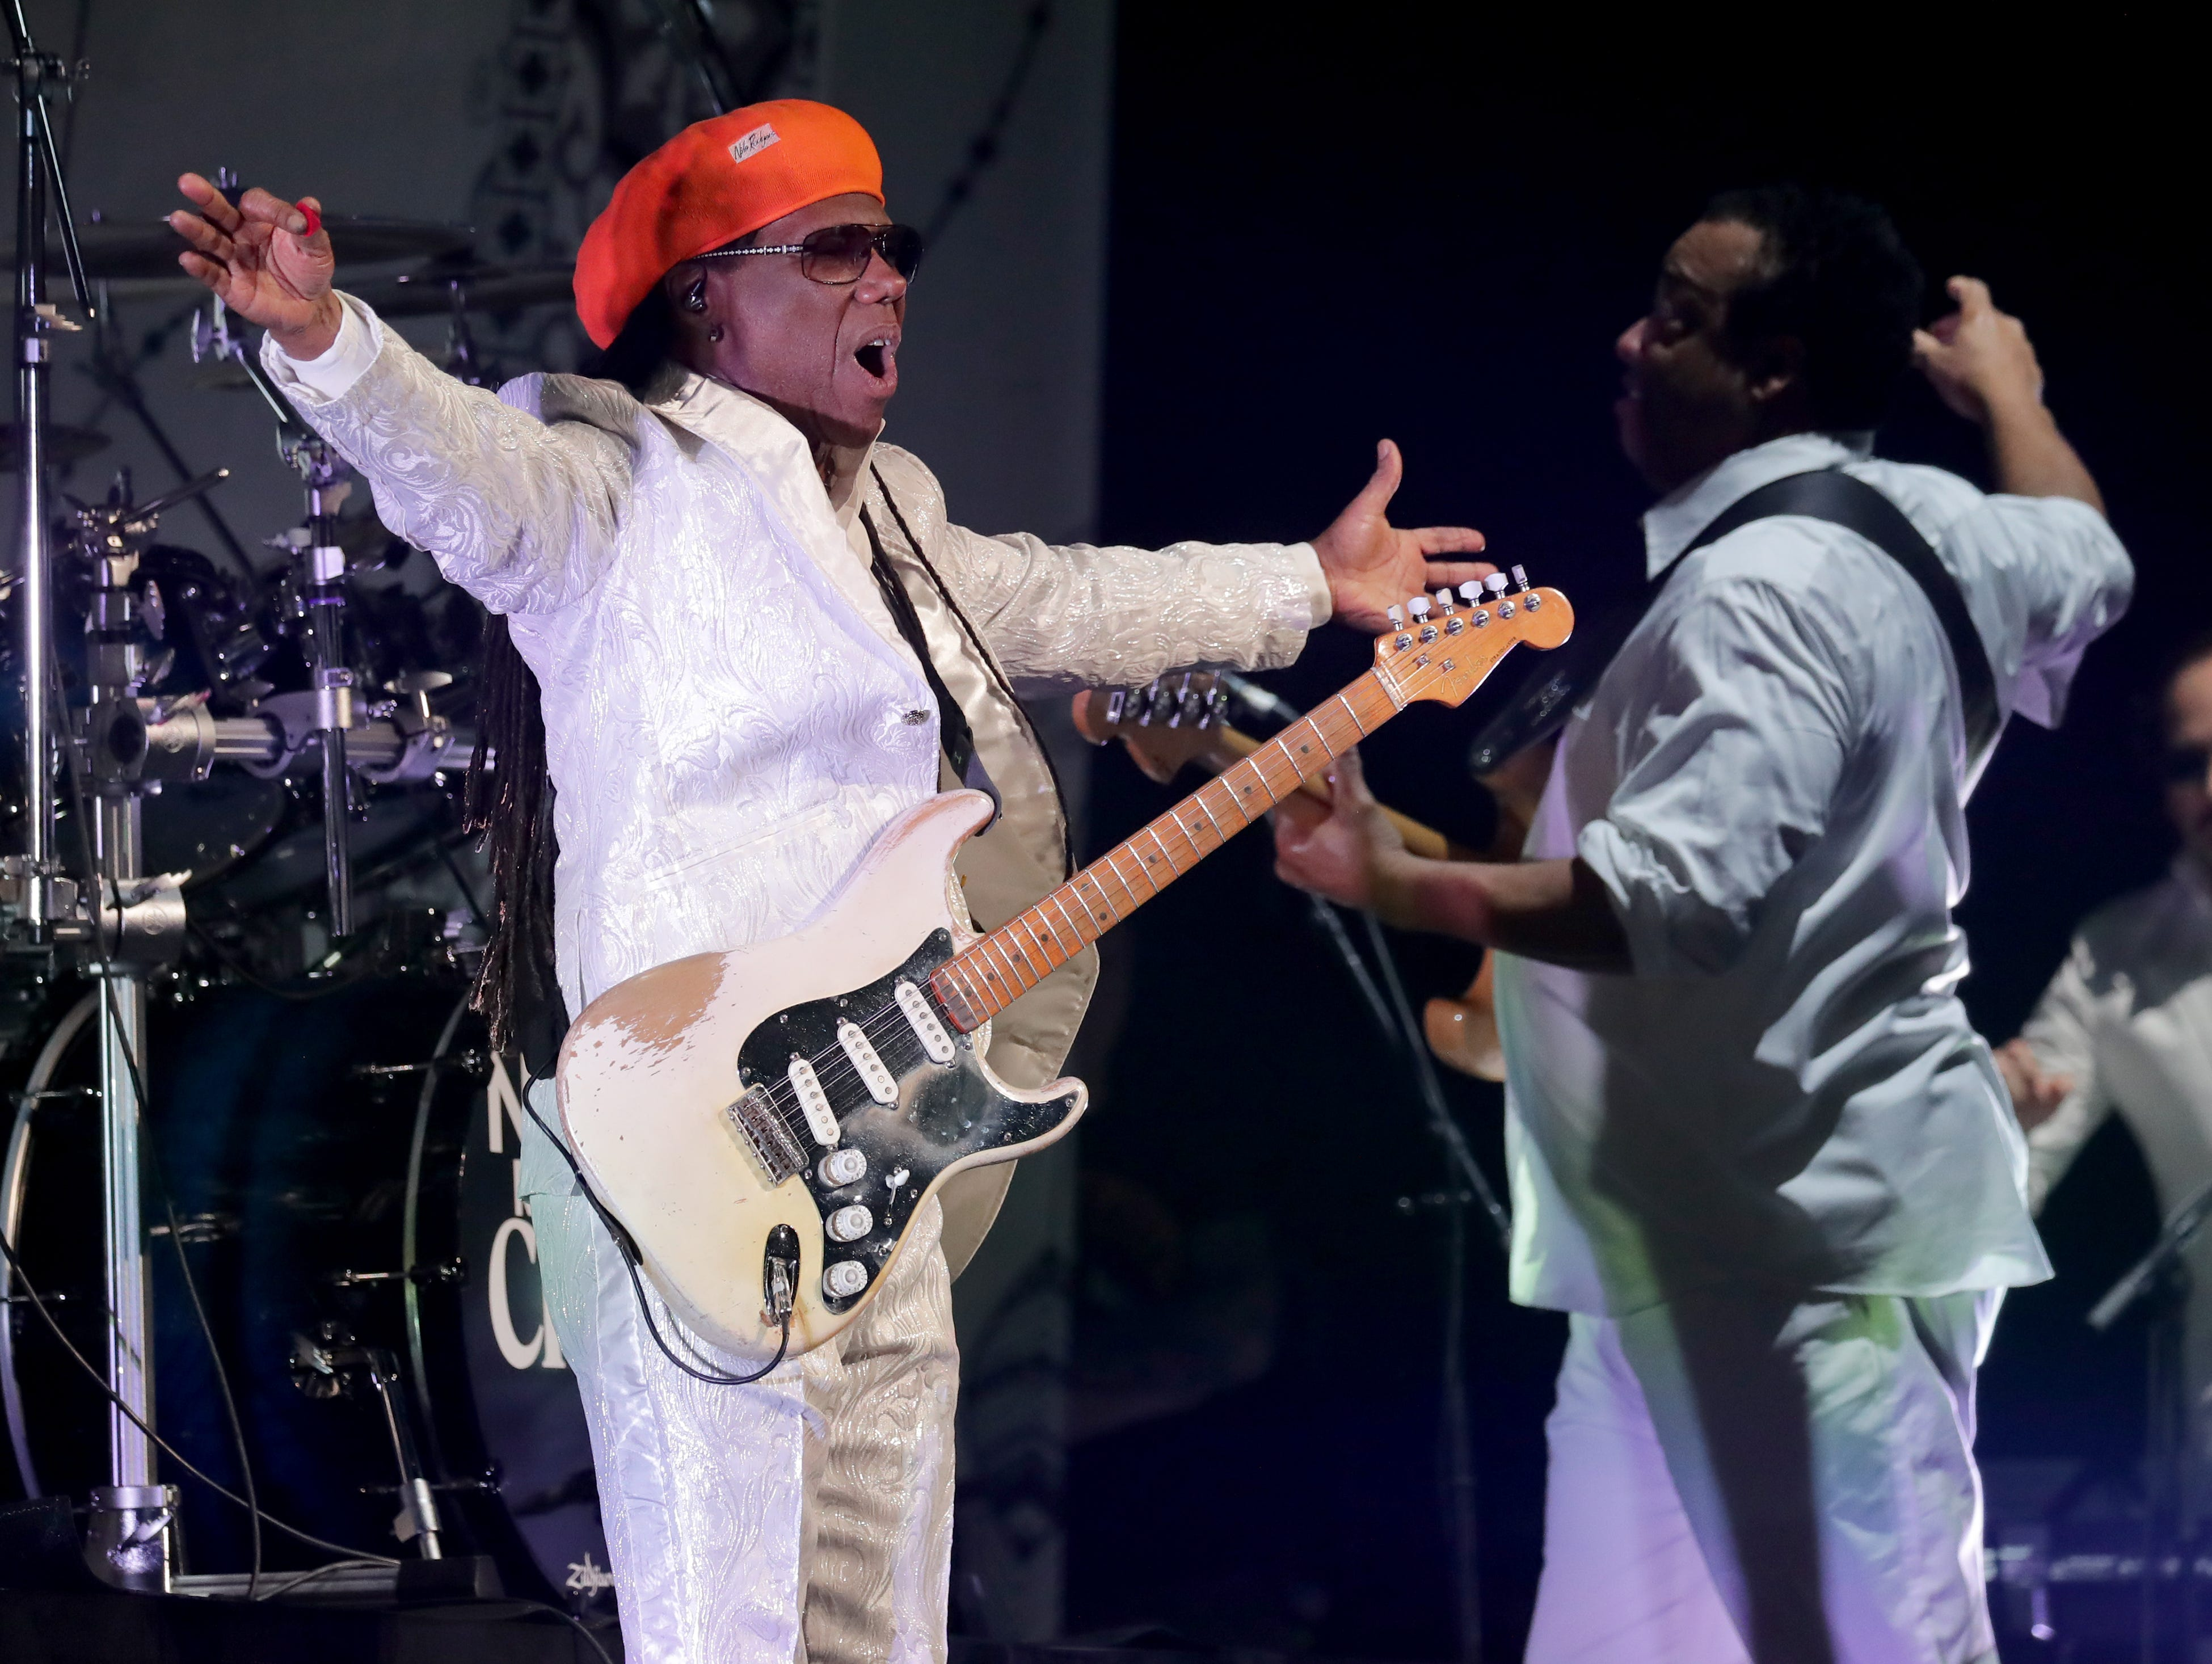 Nile Rodgers with Chic, who opened for Cher, performs at Fiserv Forum in Milwaukee on Sunday.